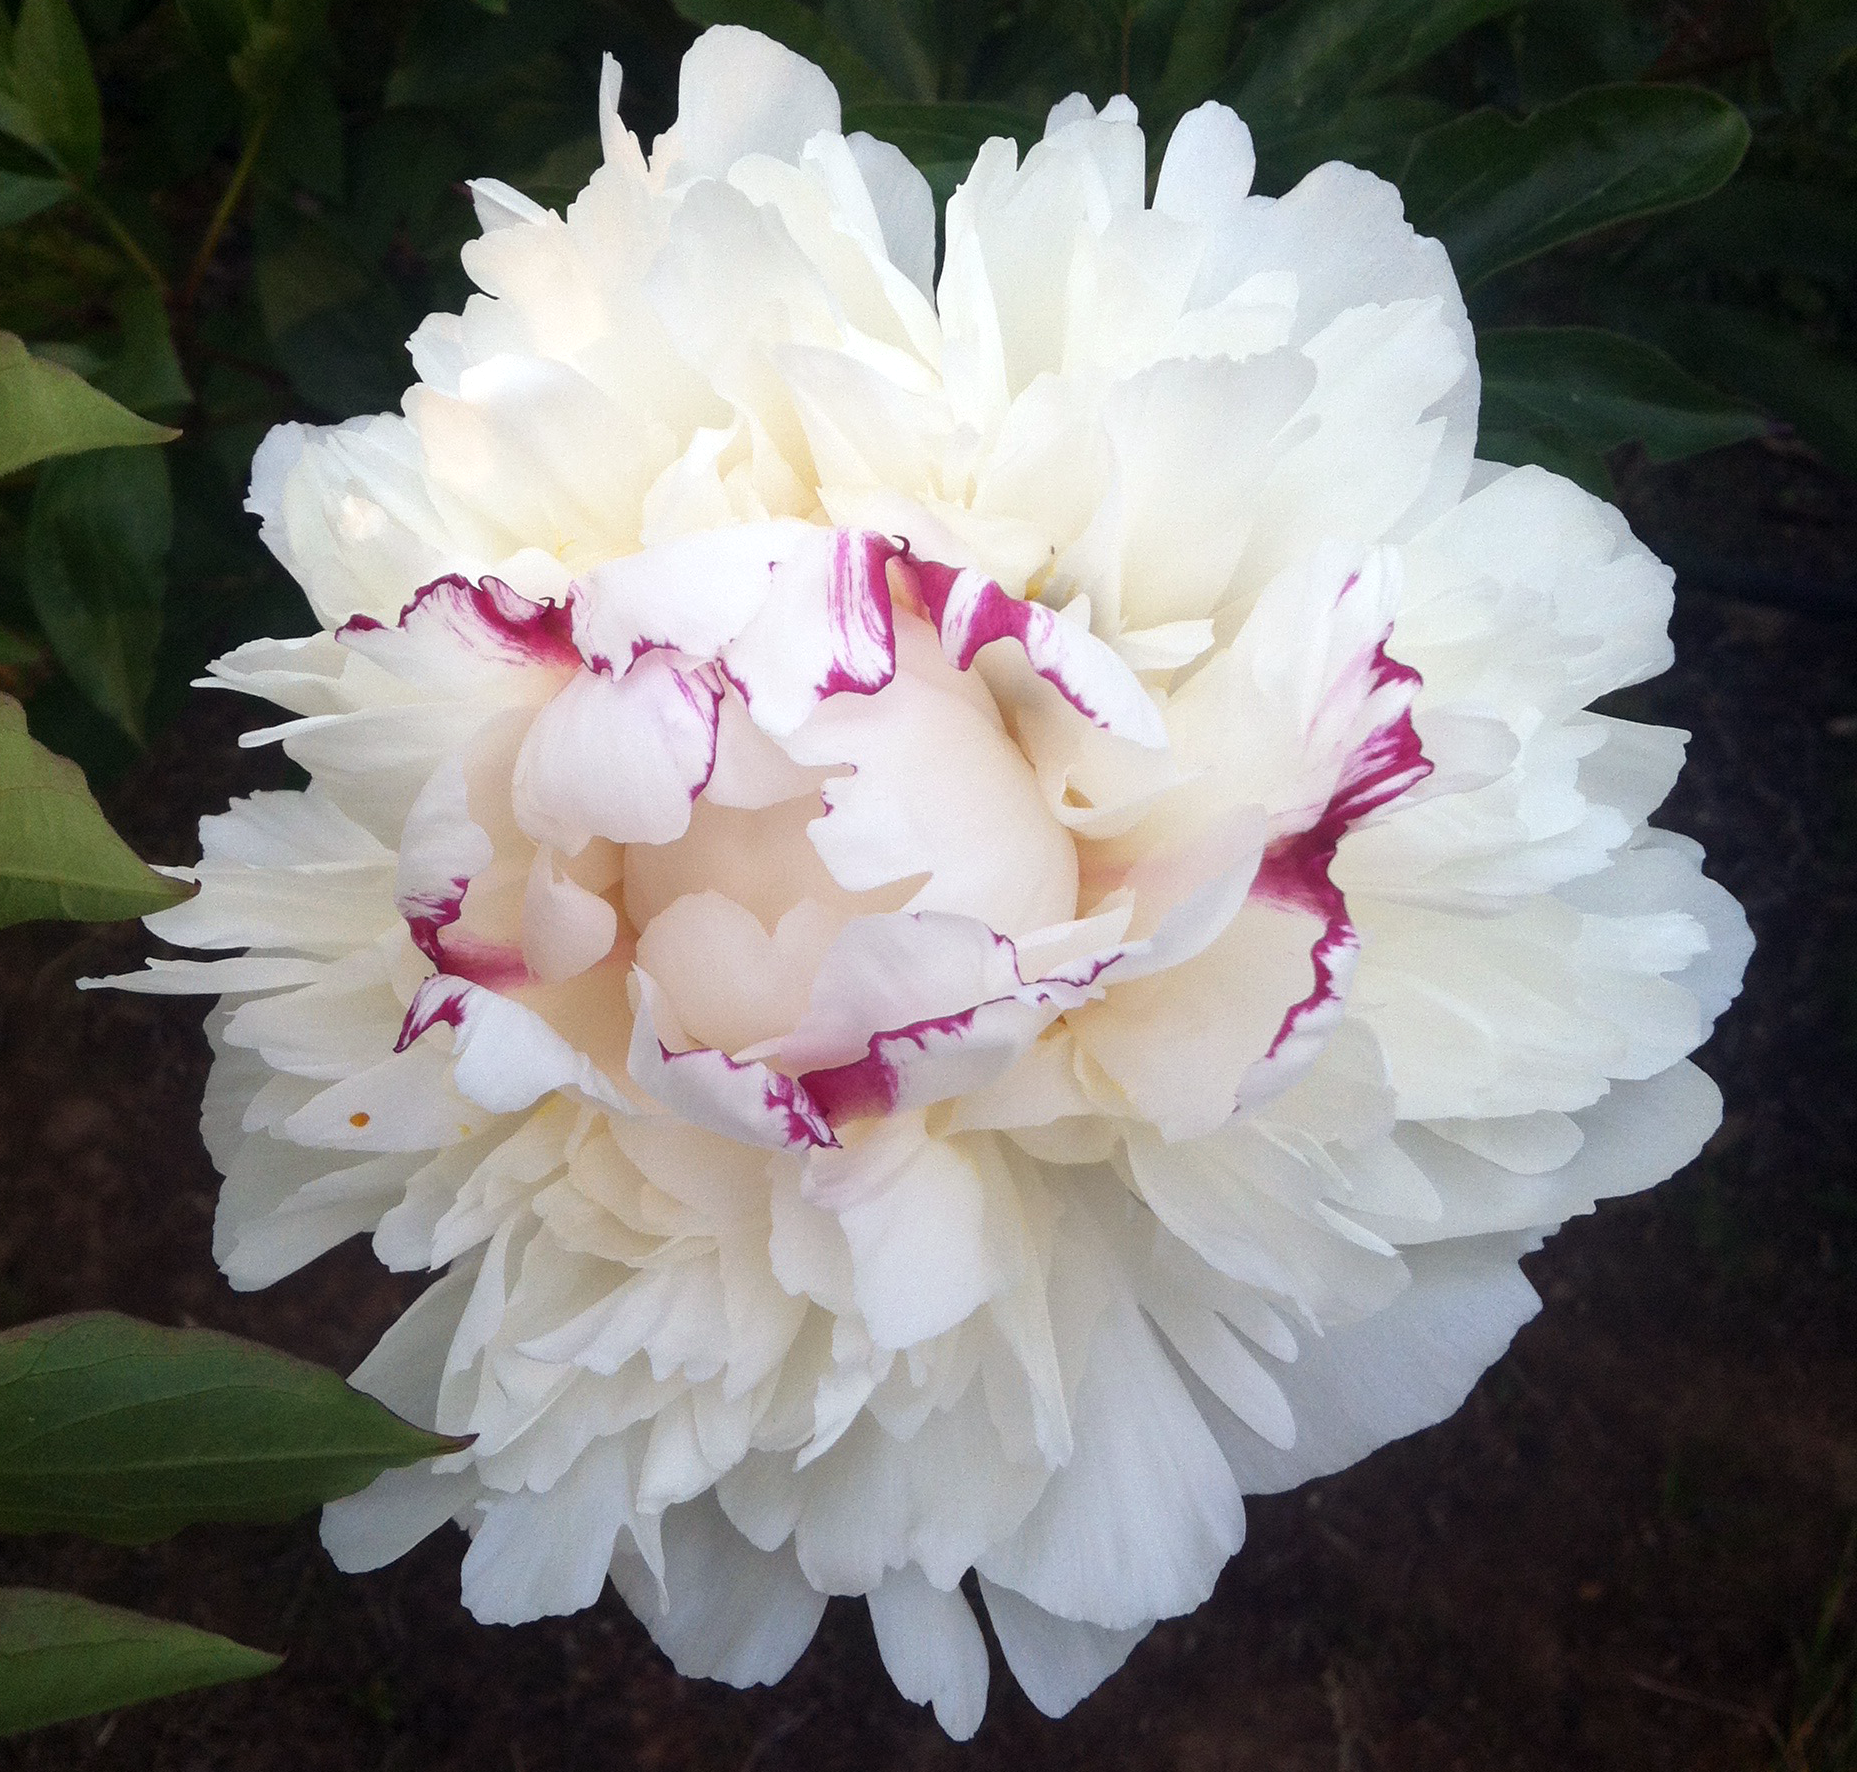 Festiva Maxima - Festiva Maxima is the peony you want if you want a clear white flower.It is a full double, clear white peony with small red highlights on the tips of a few petals. Leave the red in for texture or snip it out. Festiva has a light a clean fragrance and excellent vase life.